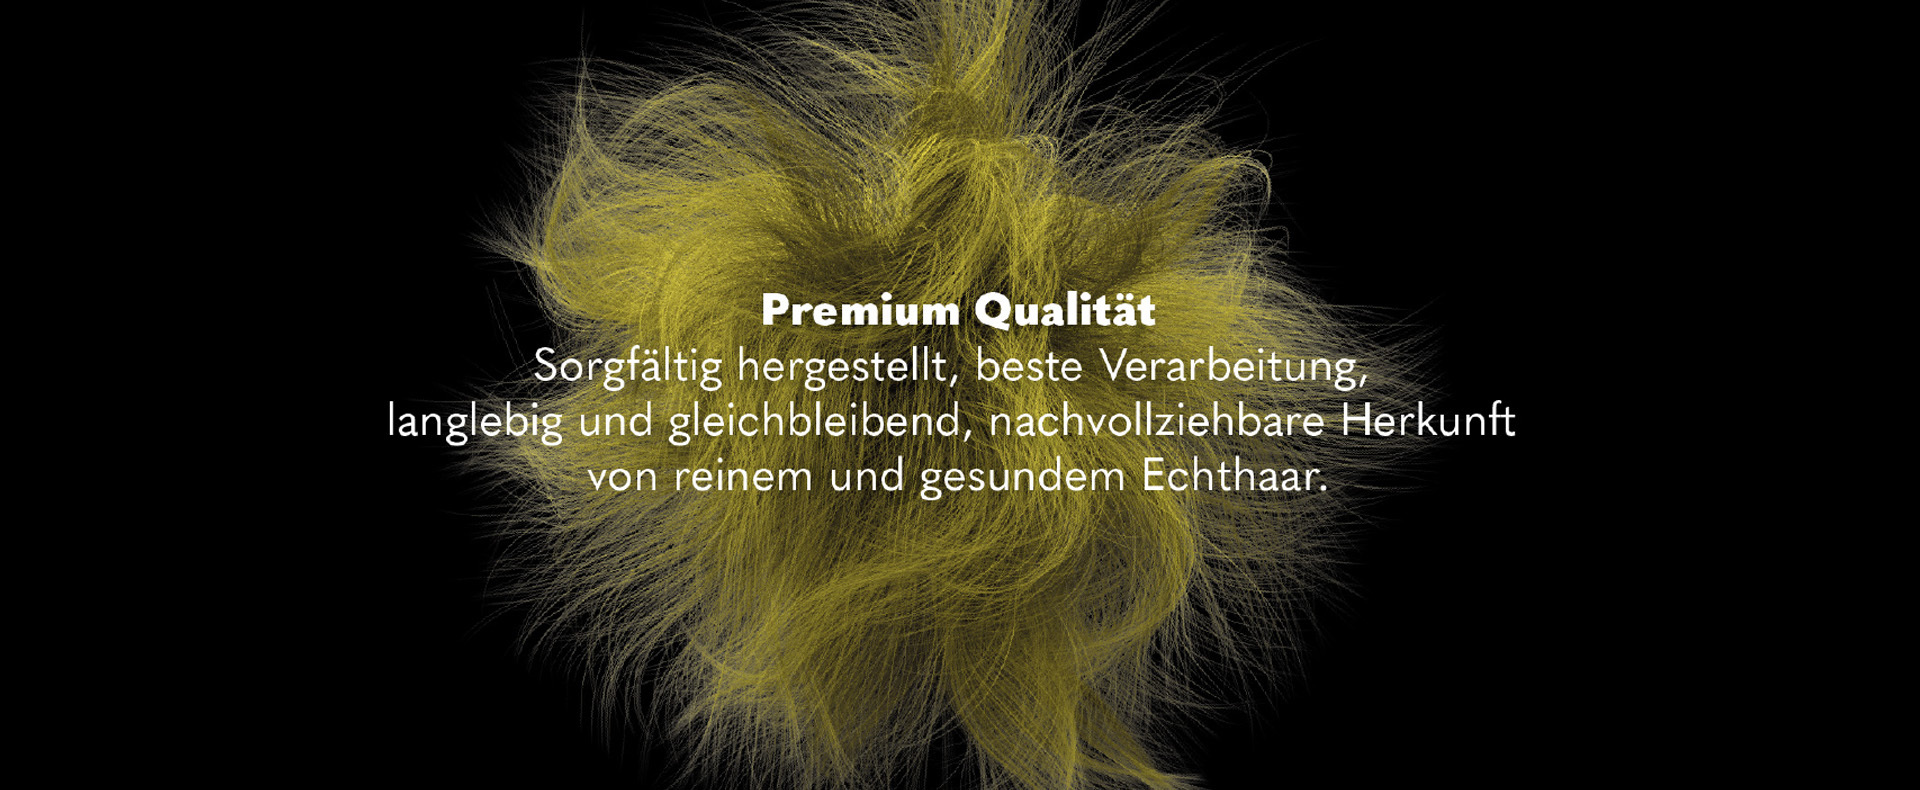 Premium Qualität (© Great Lengths)